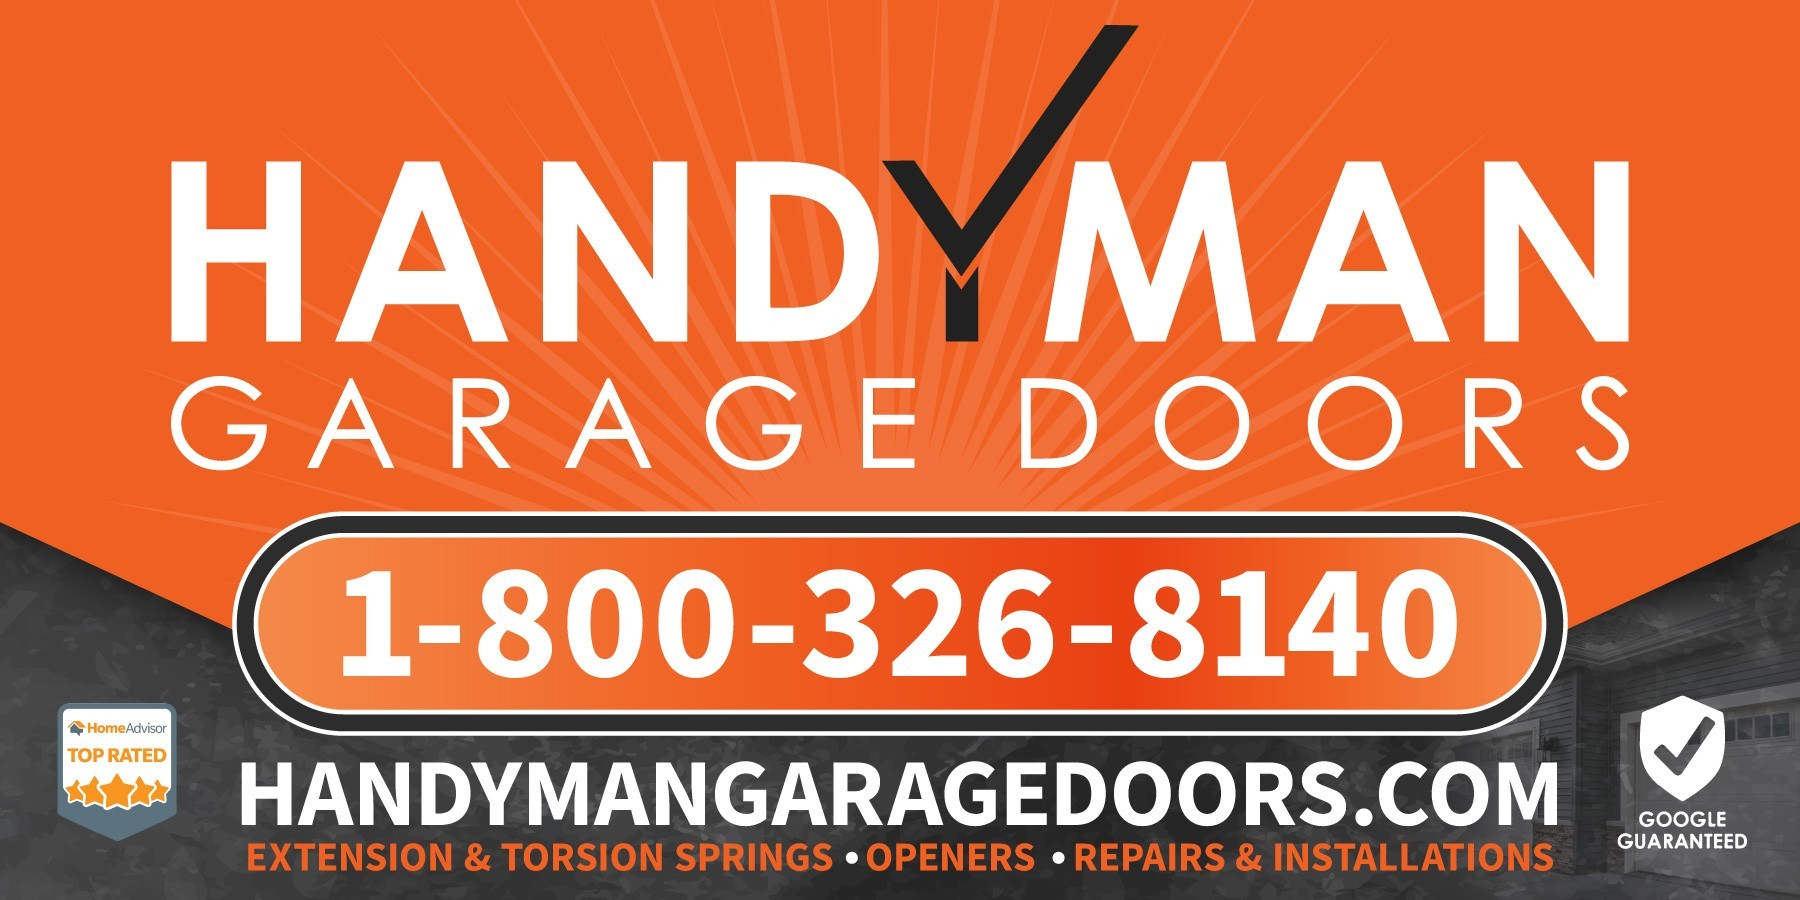 Handyman Garage Doors